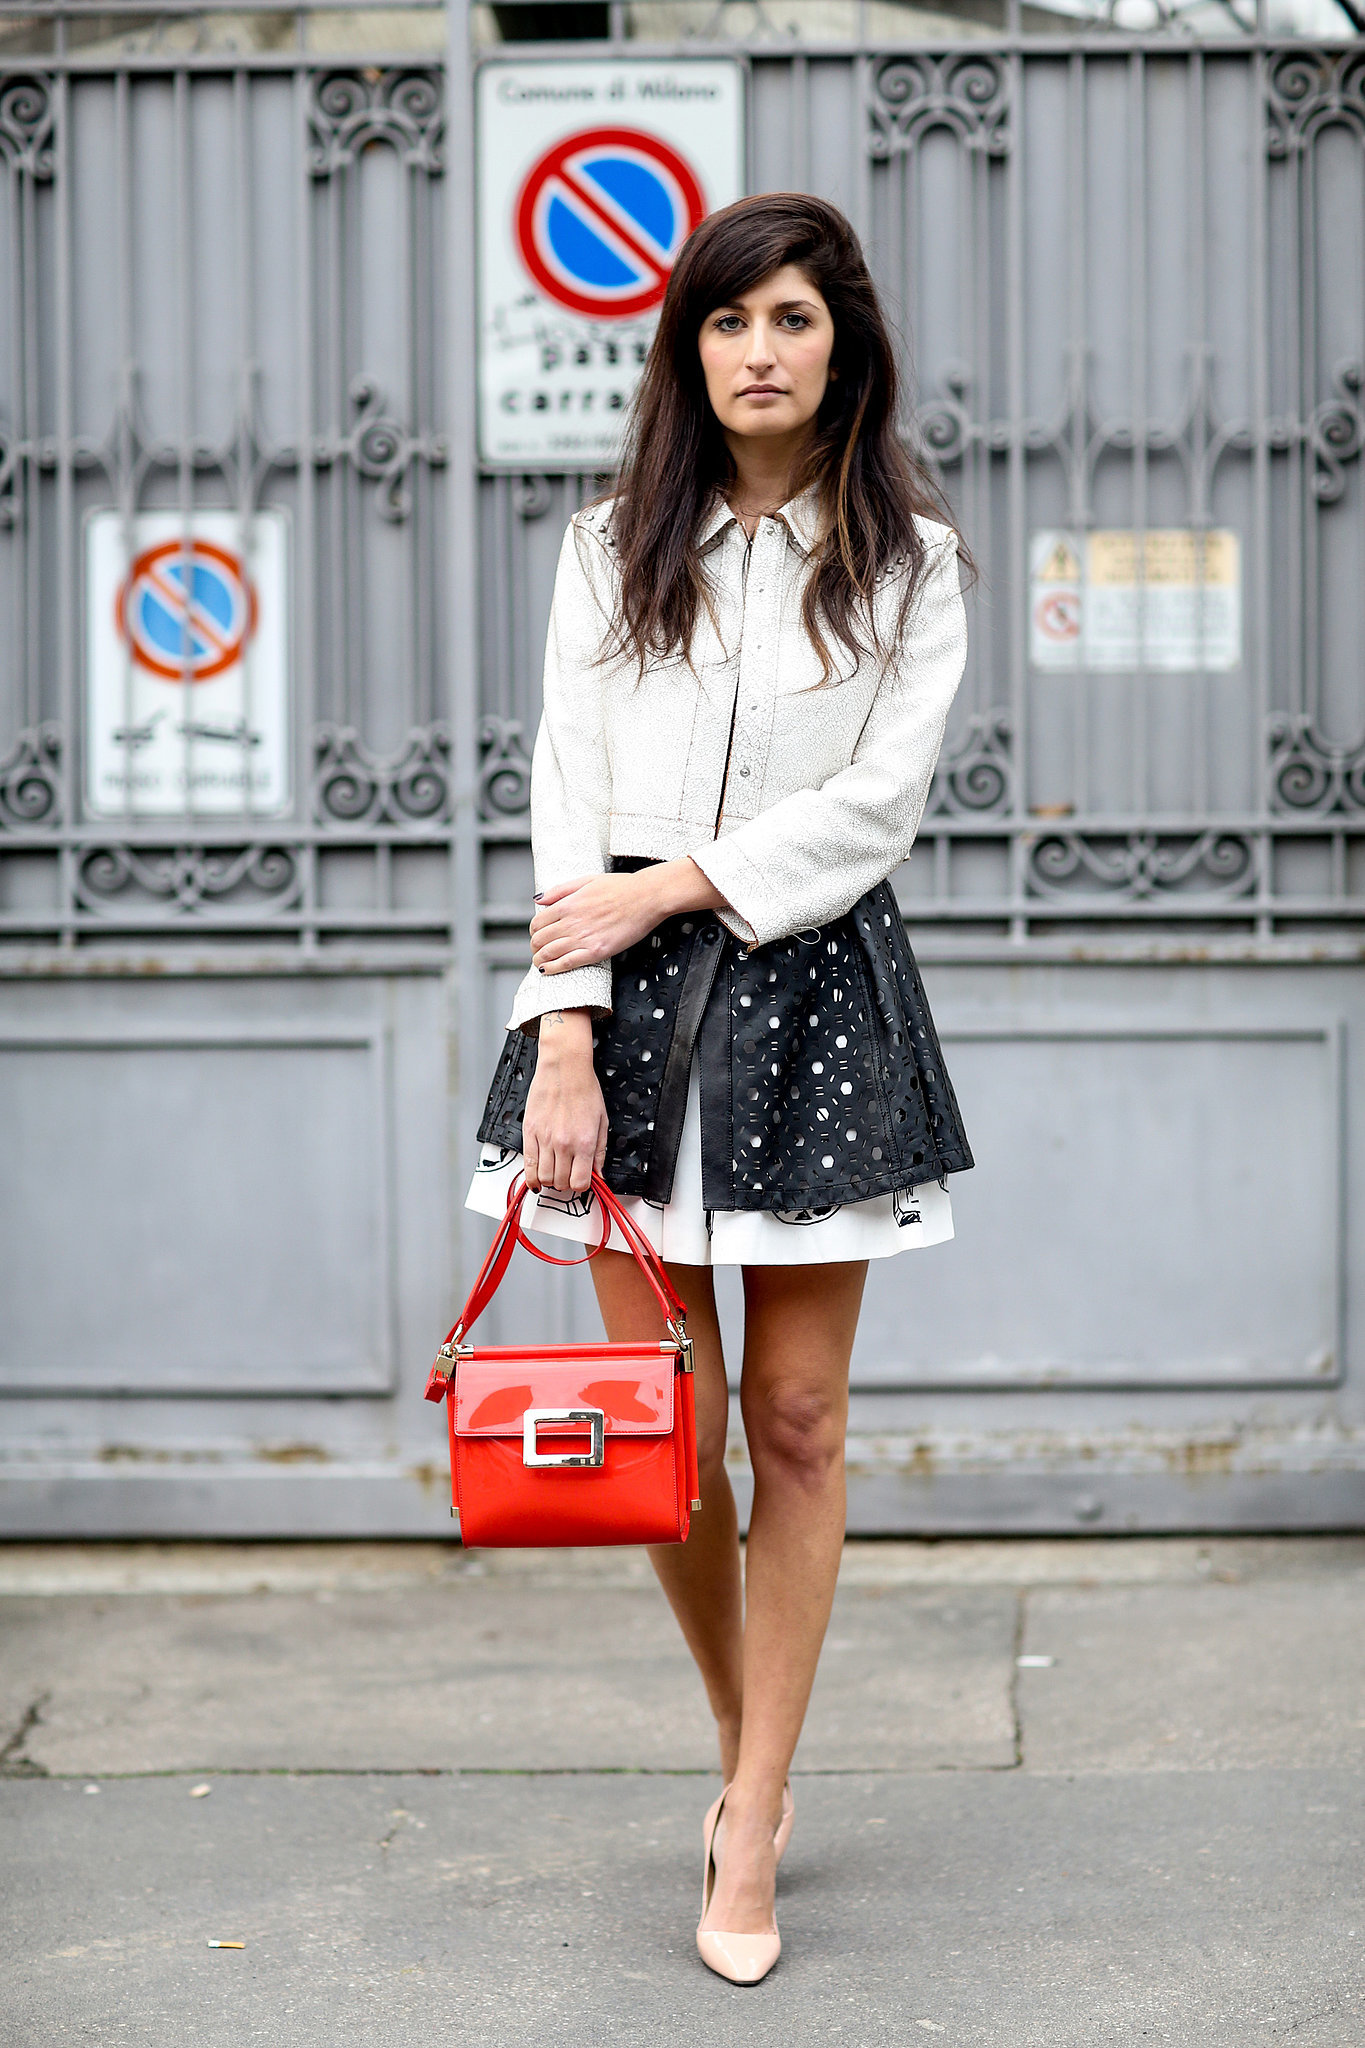 Milan Fashion Week Street Style Over 100 Of Milan 39 S Chicest Street Style Outfits Popsugar